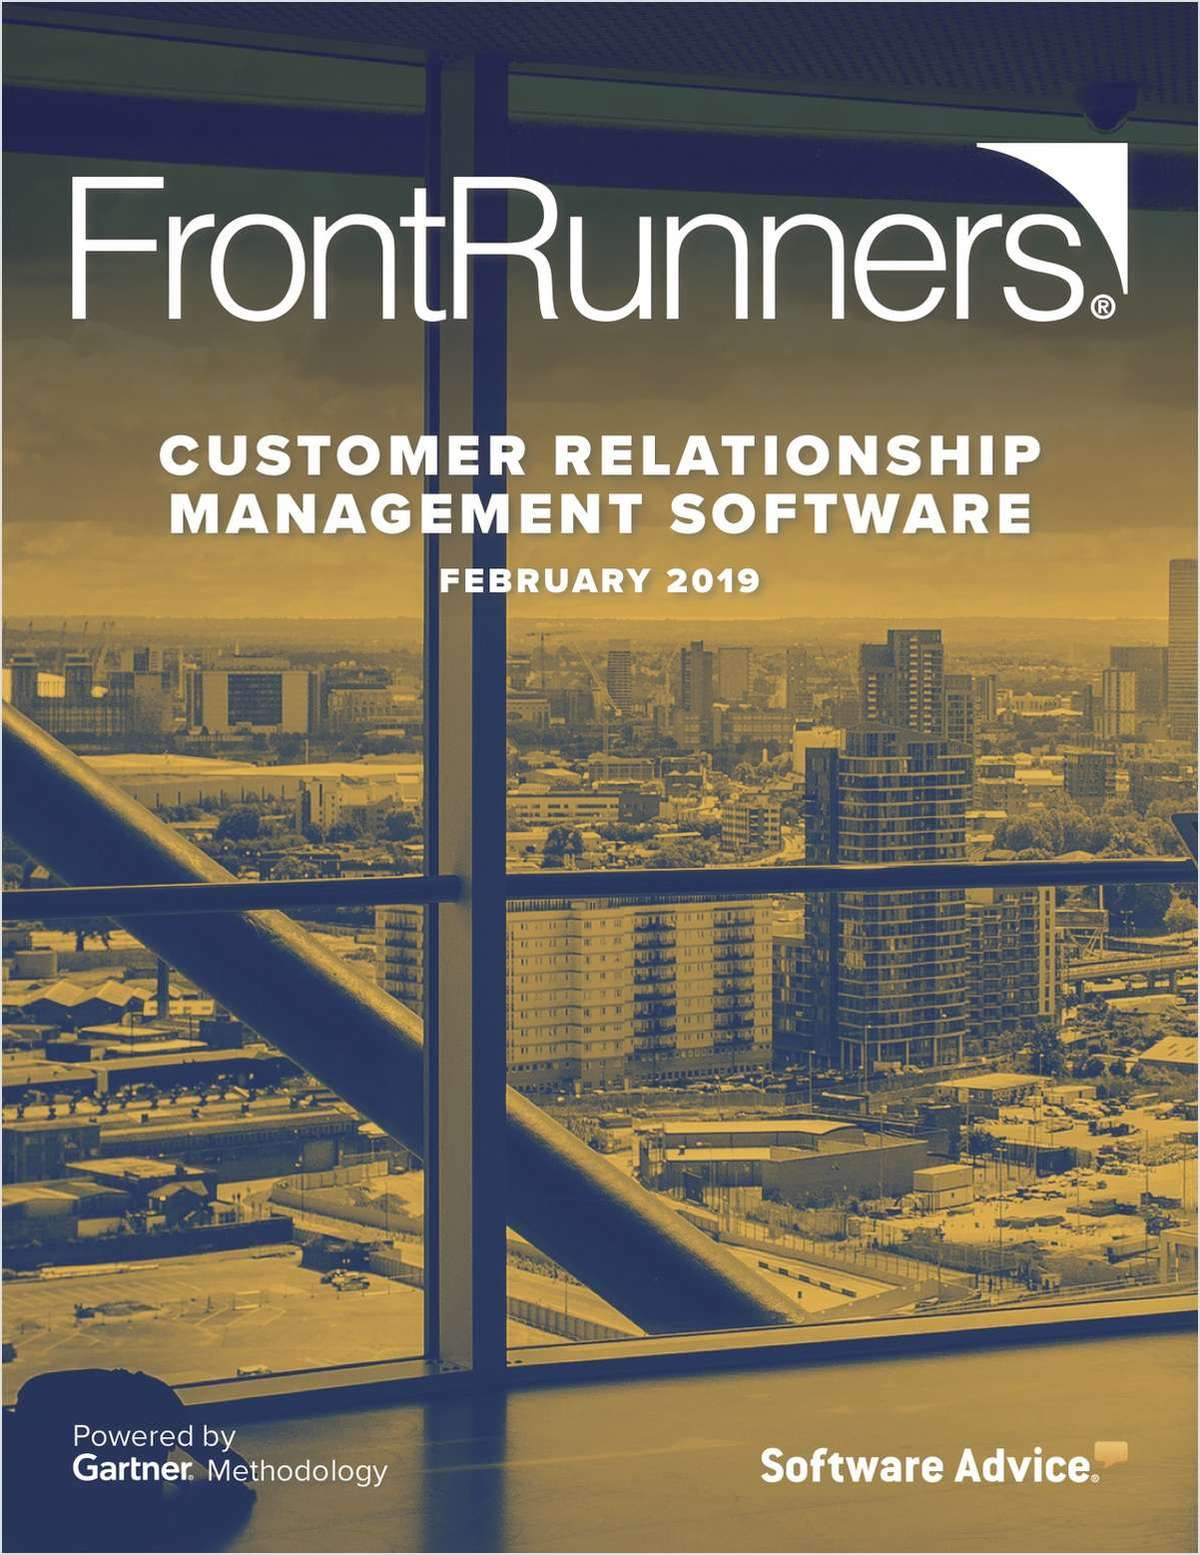 Top Rated FrontRunners for Customer Relationship Management Software